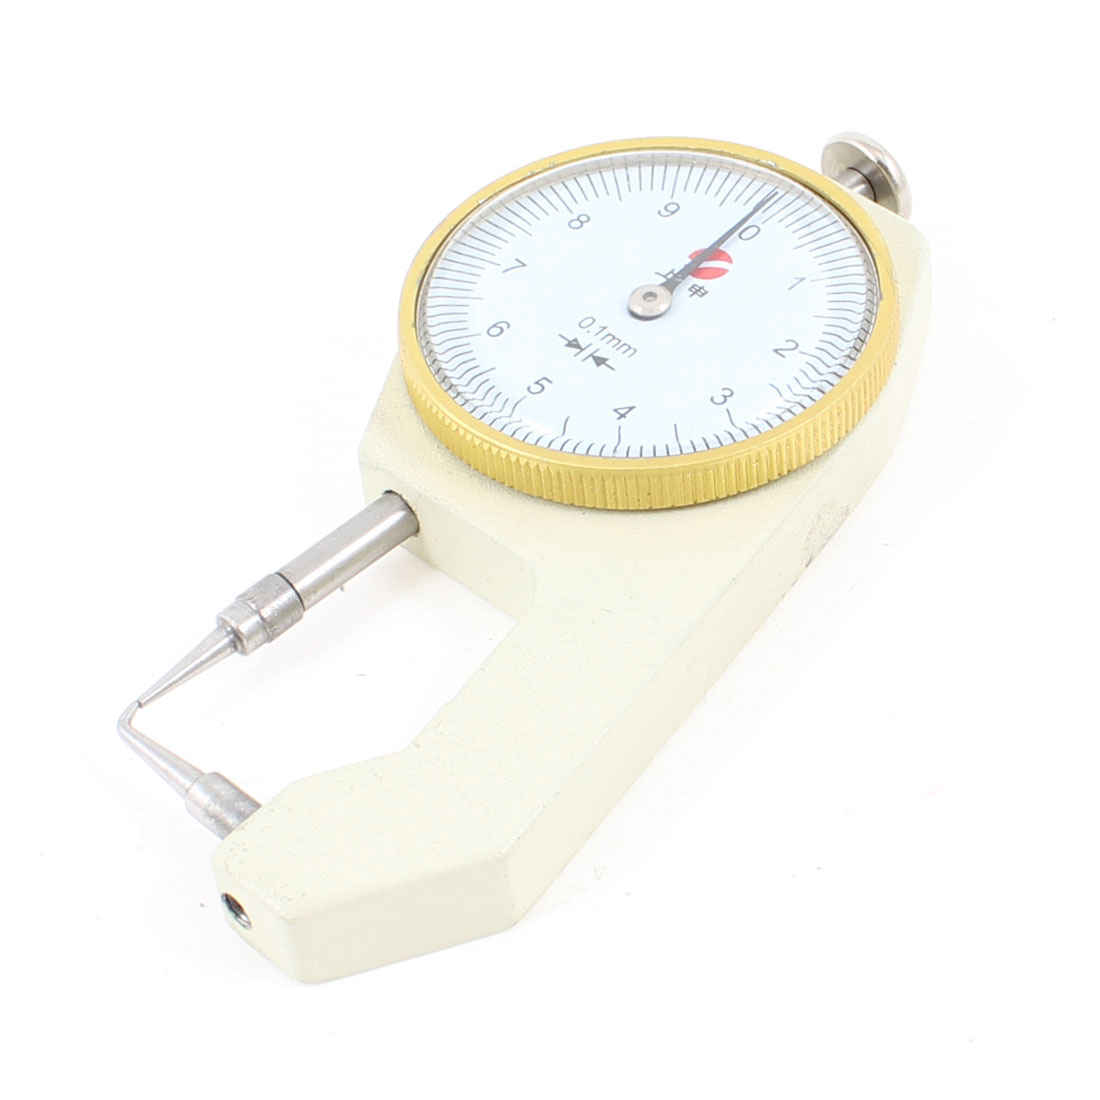 Metallic Dial Thickness Gauge Gage Measurement Tool 0 to 10mm by